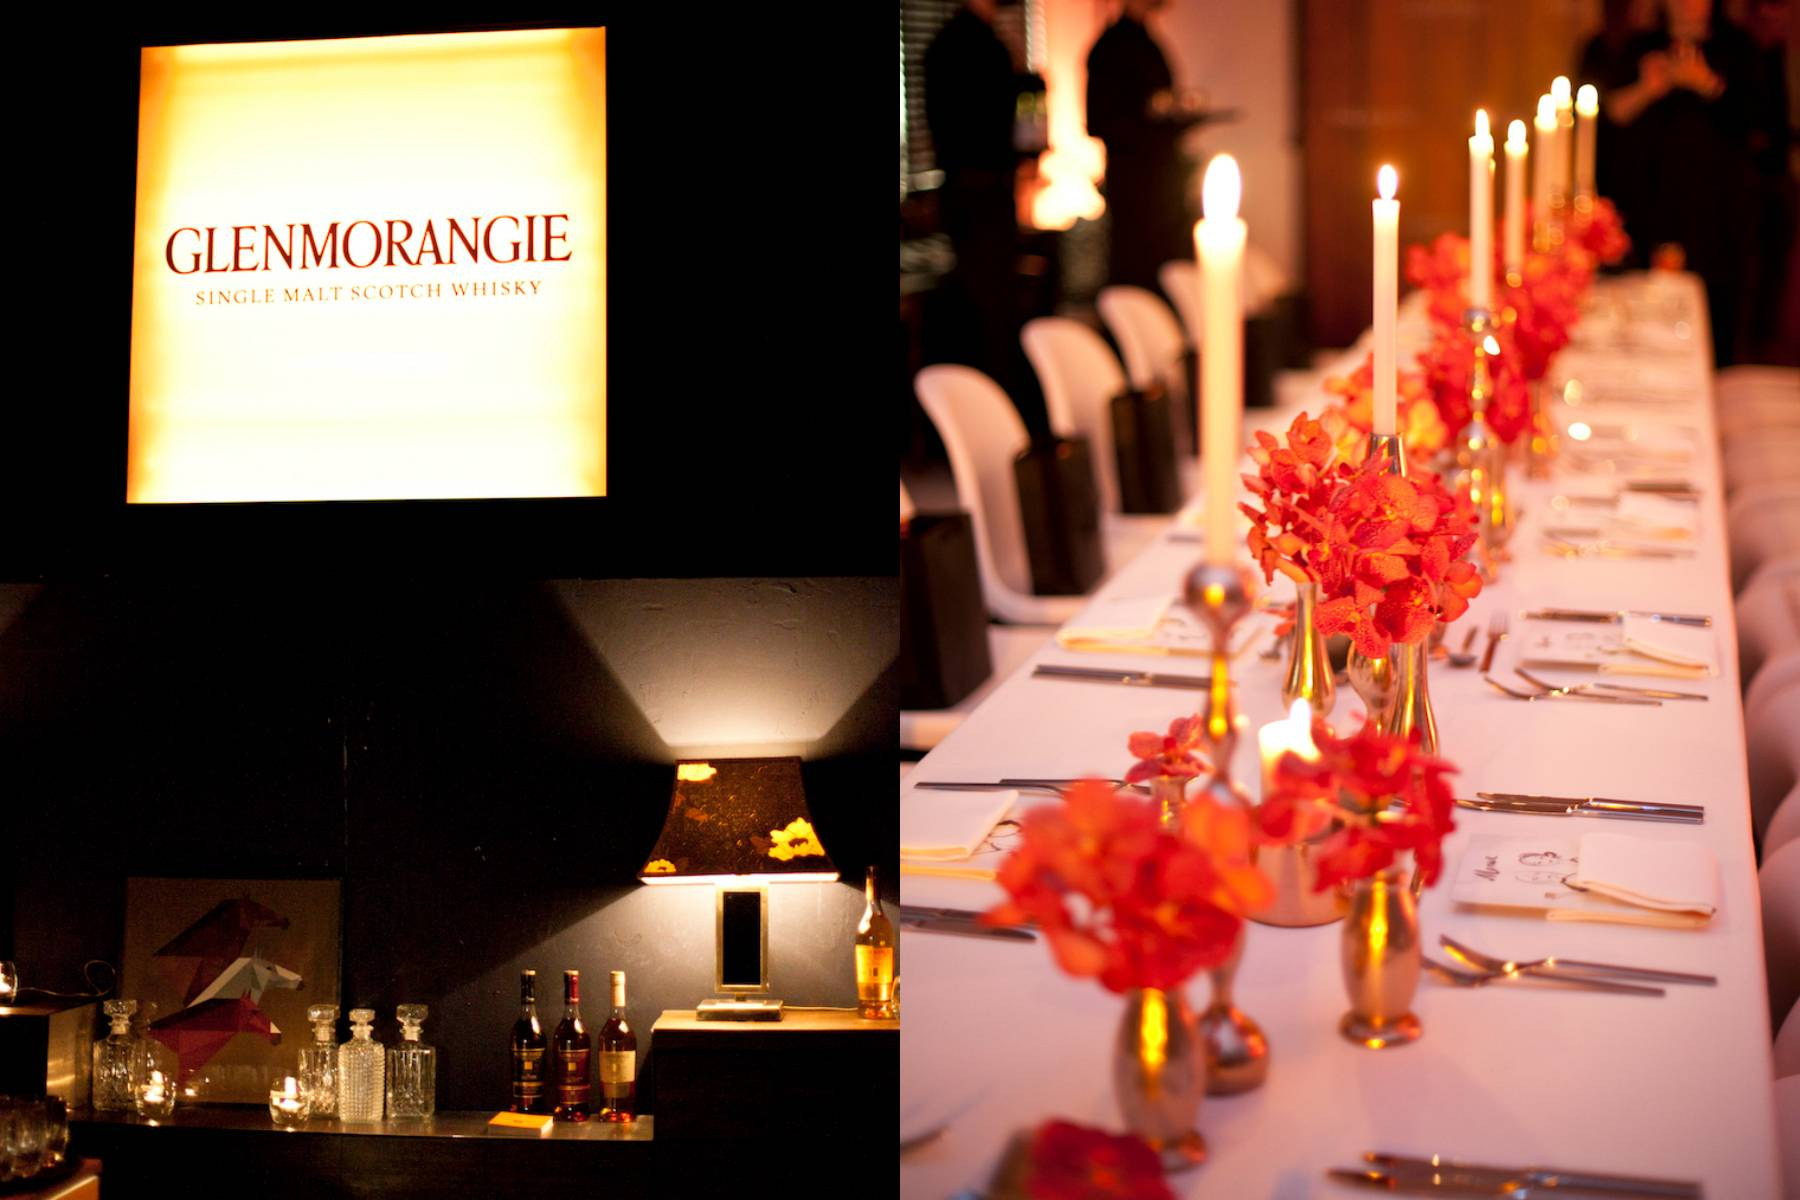 Ladies Whiskey Dinner - Glenmorangie - Munich - Modebranche - Medienbranche - Press Release - Evening - Food - Fashionblog München - Luxus - Studio Simon Lohmeyer - Glockenbach